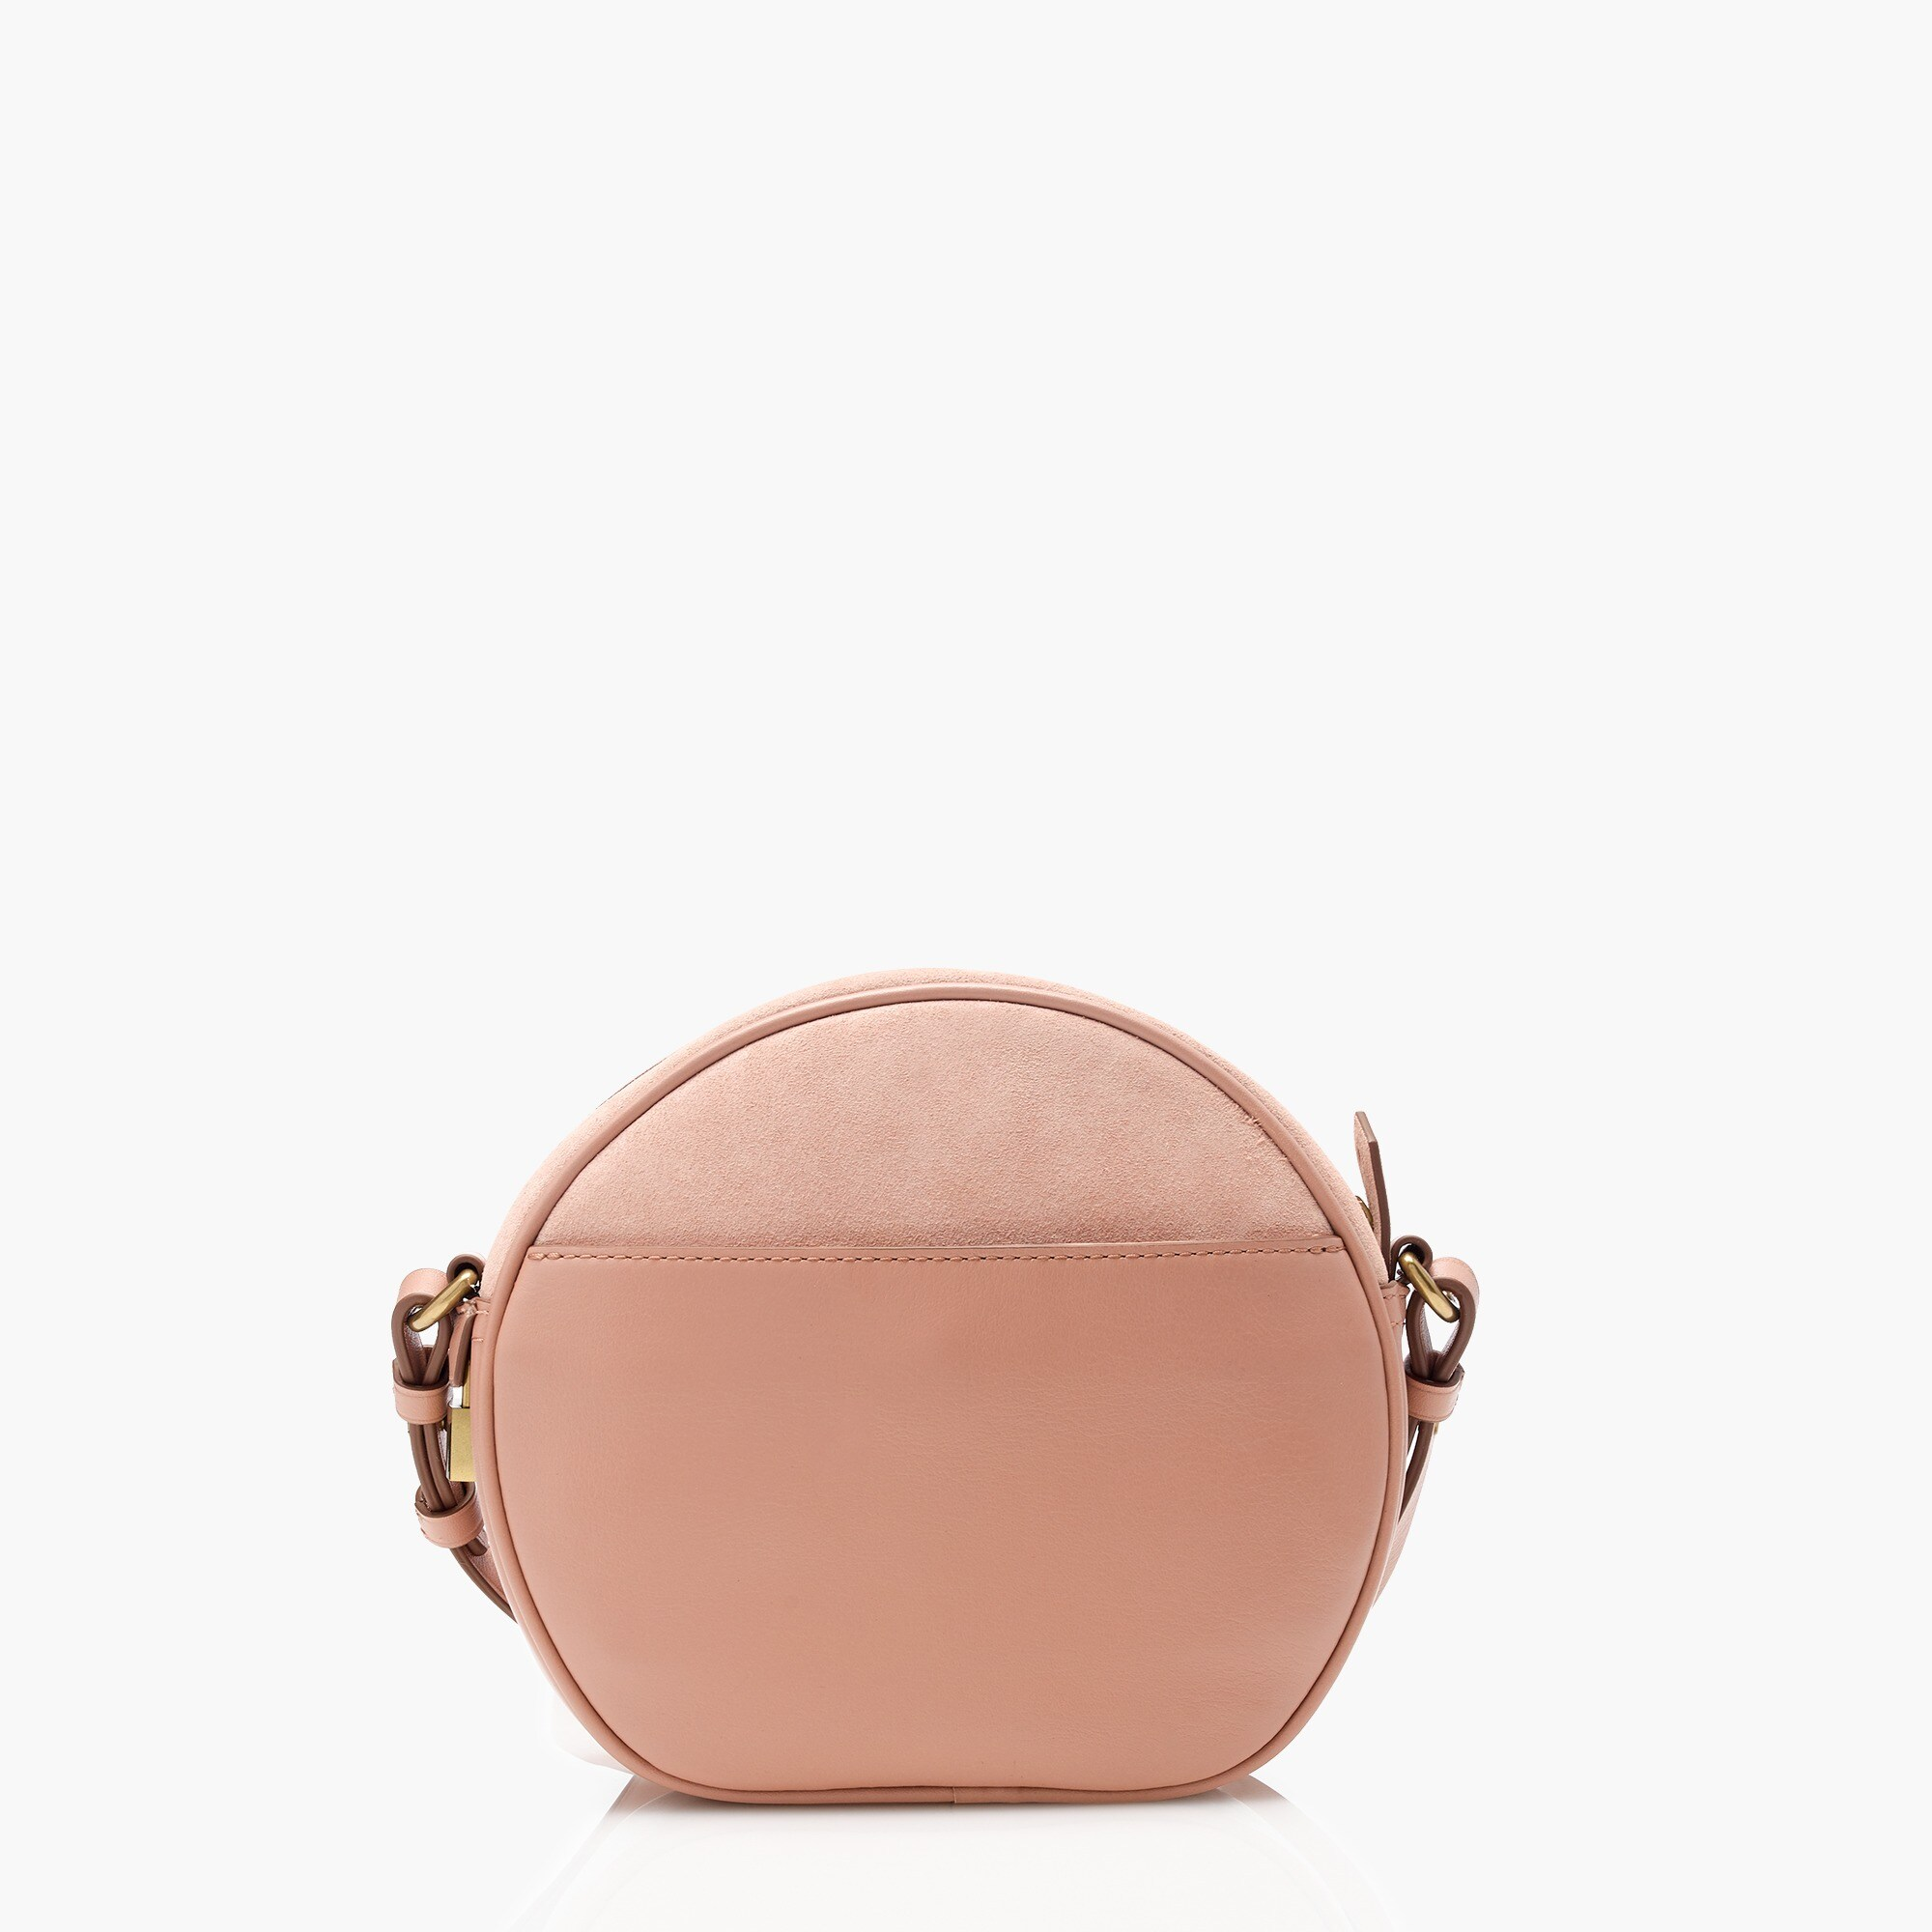 Signet circle bag in suede